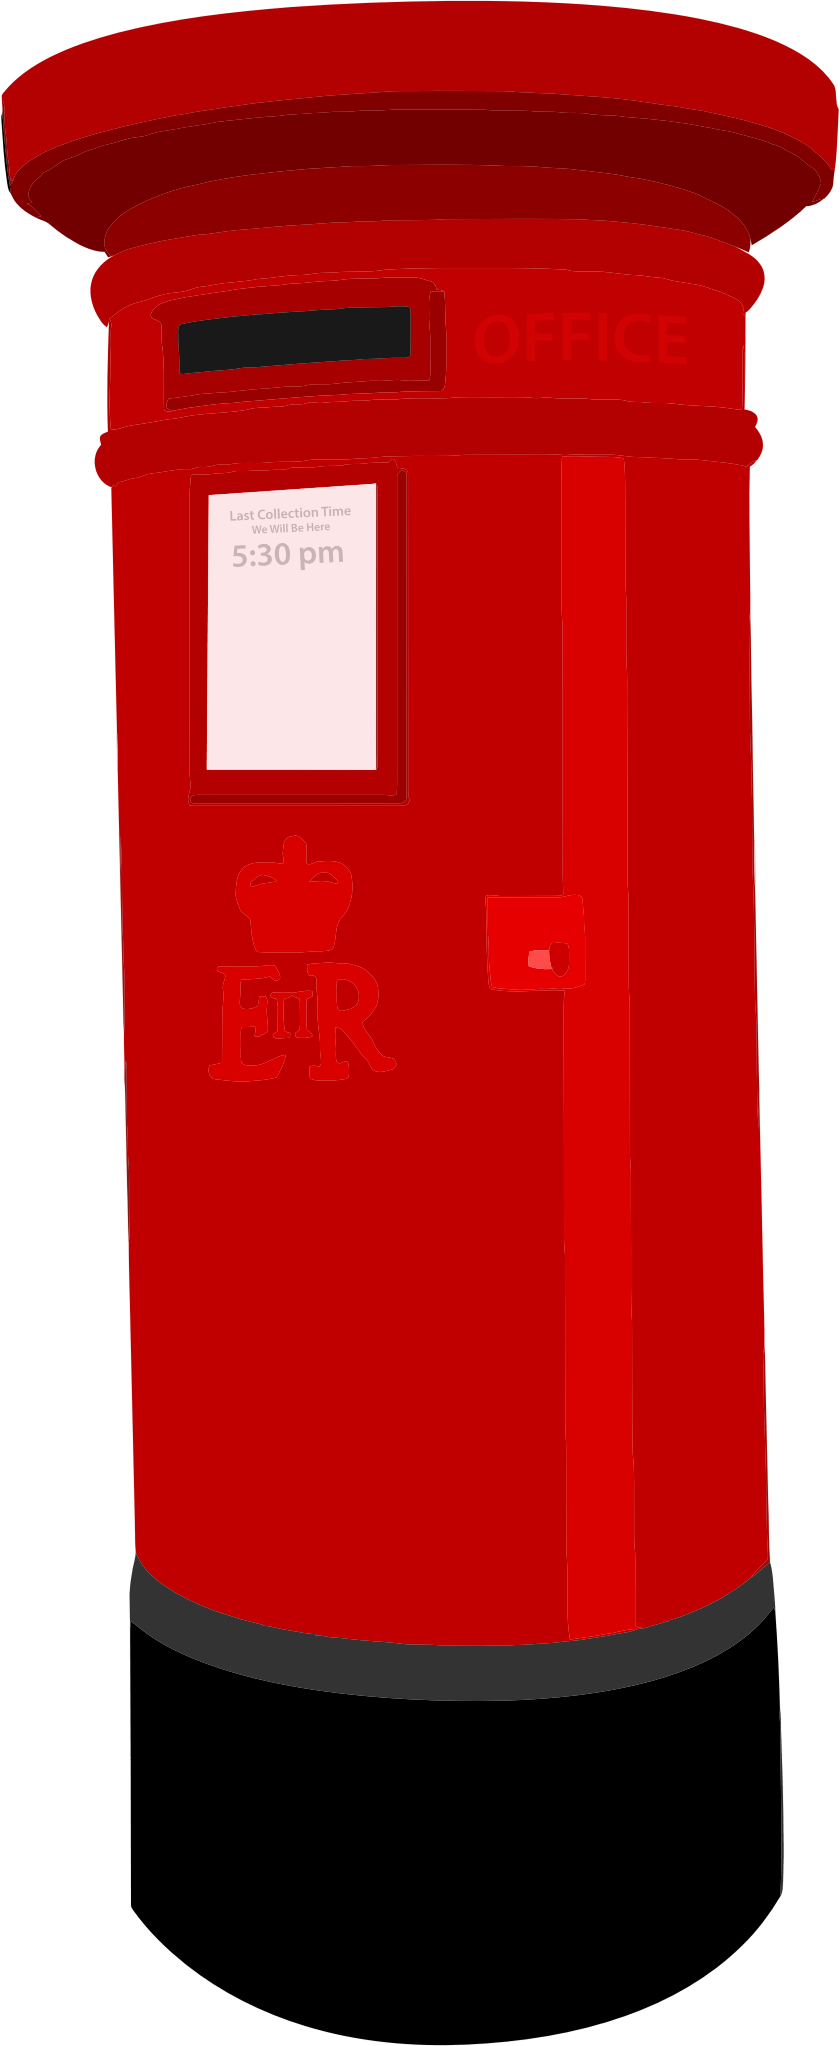 Red mailbox on post png. Postbox images free download